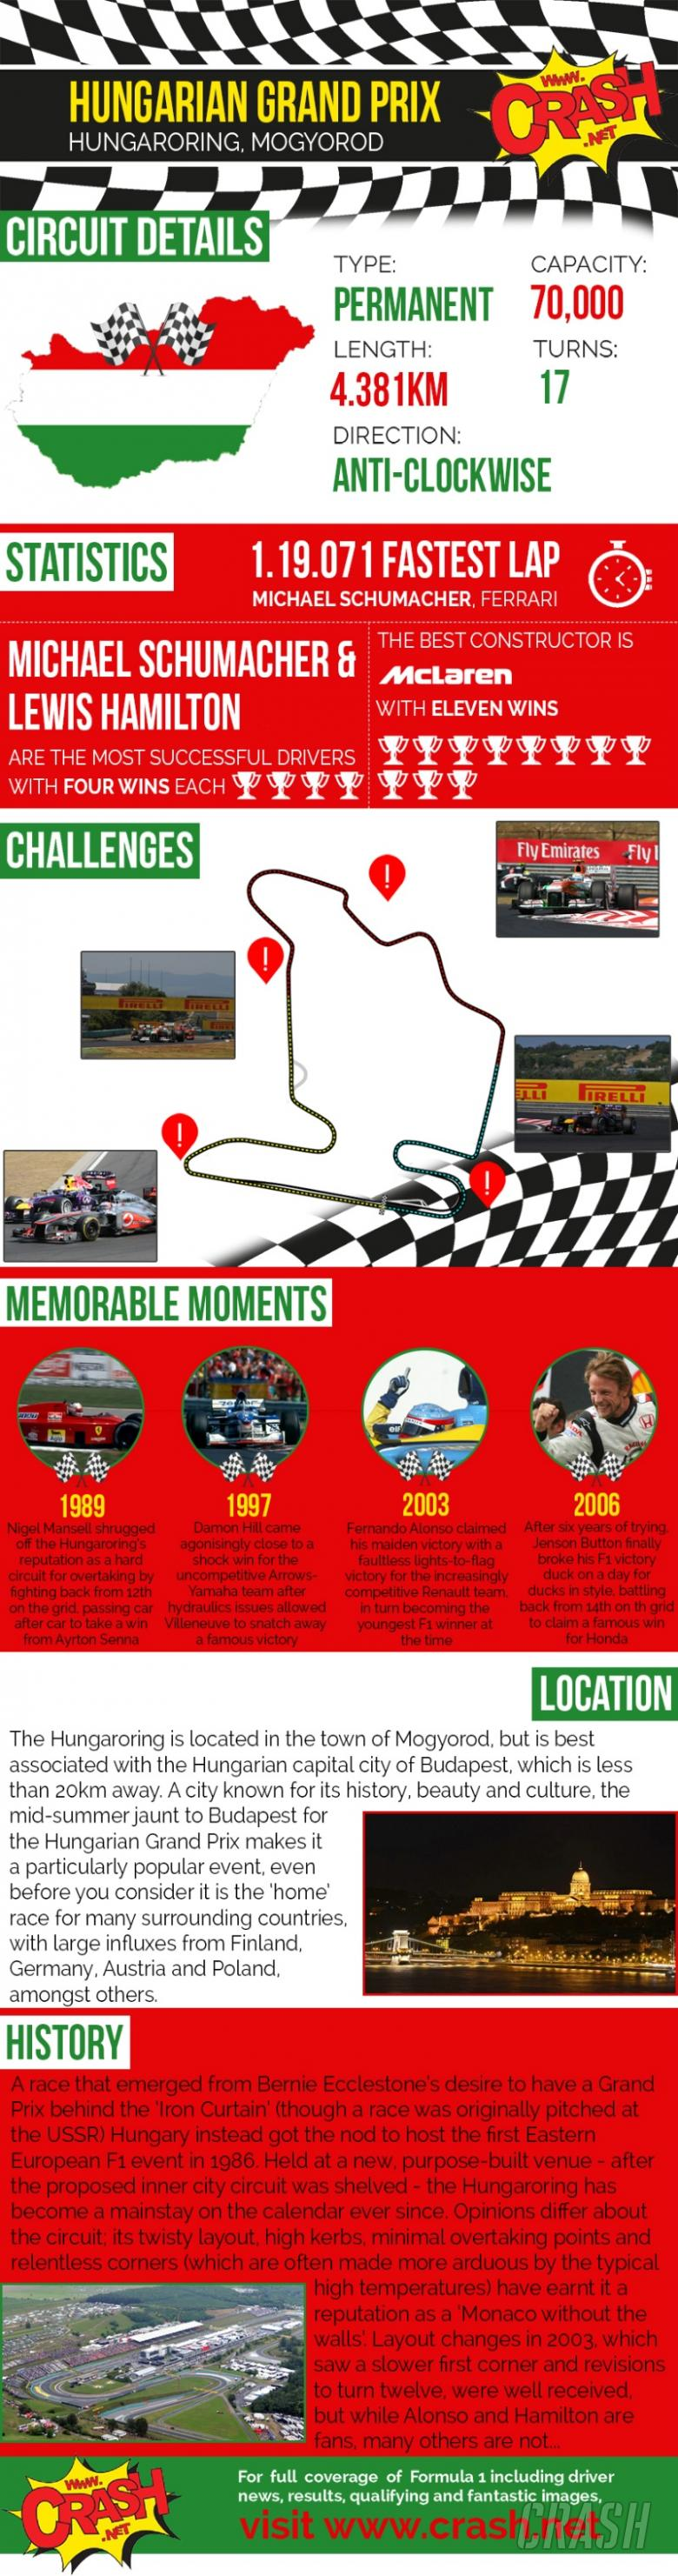 Hungarian Grand Prix Infographic - All you need to know!